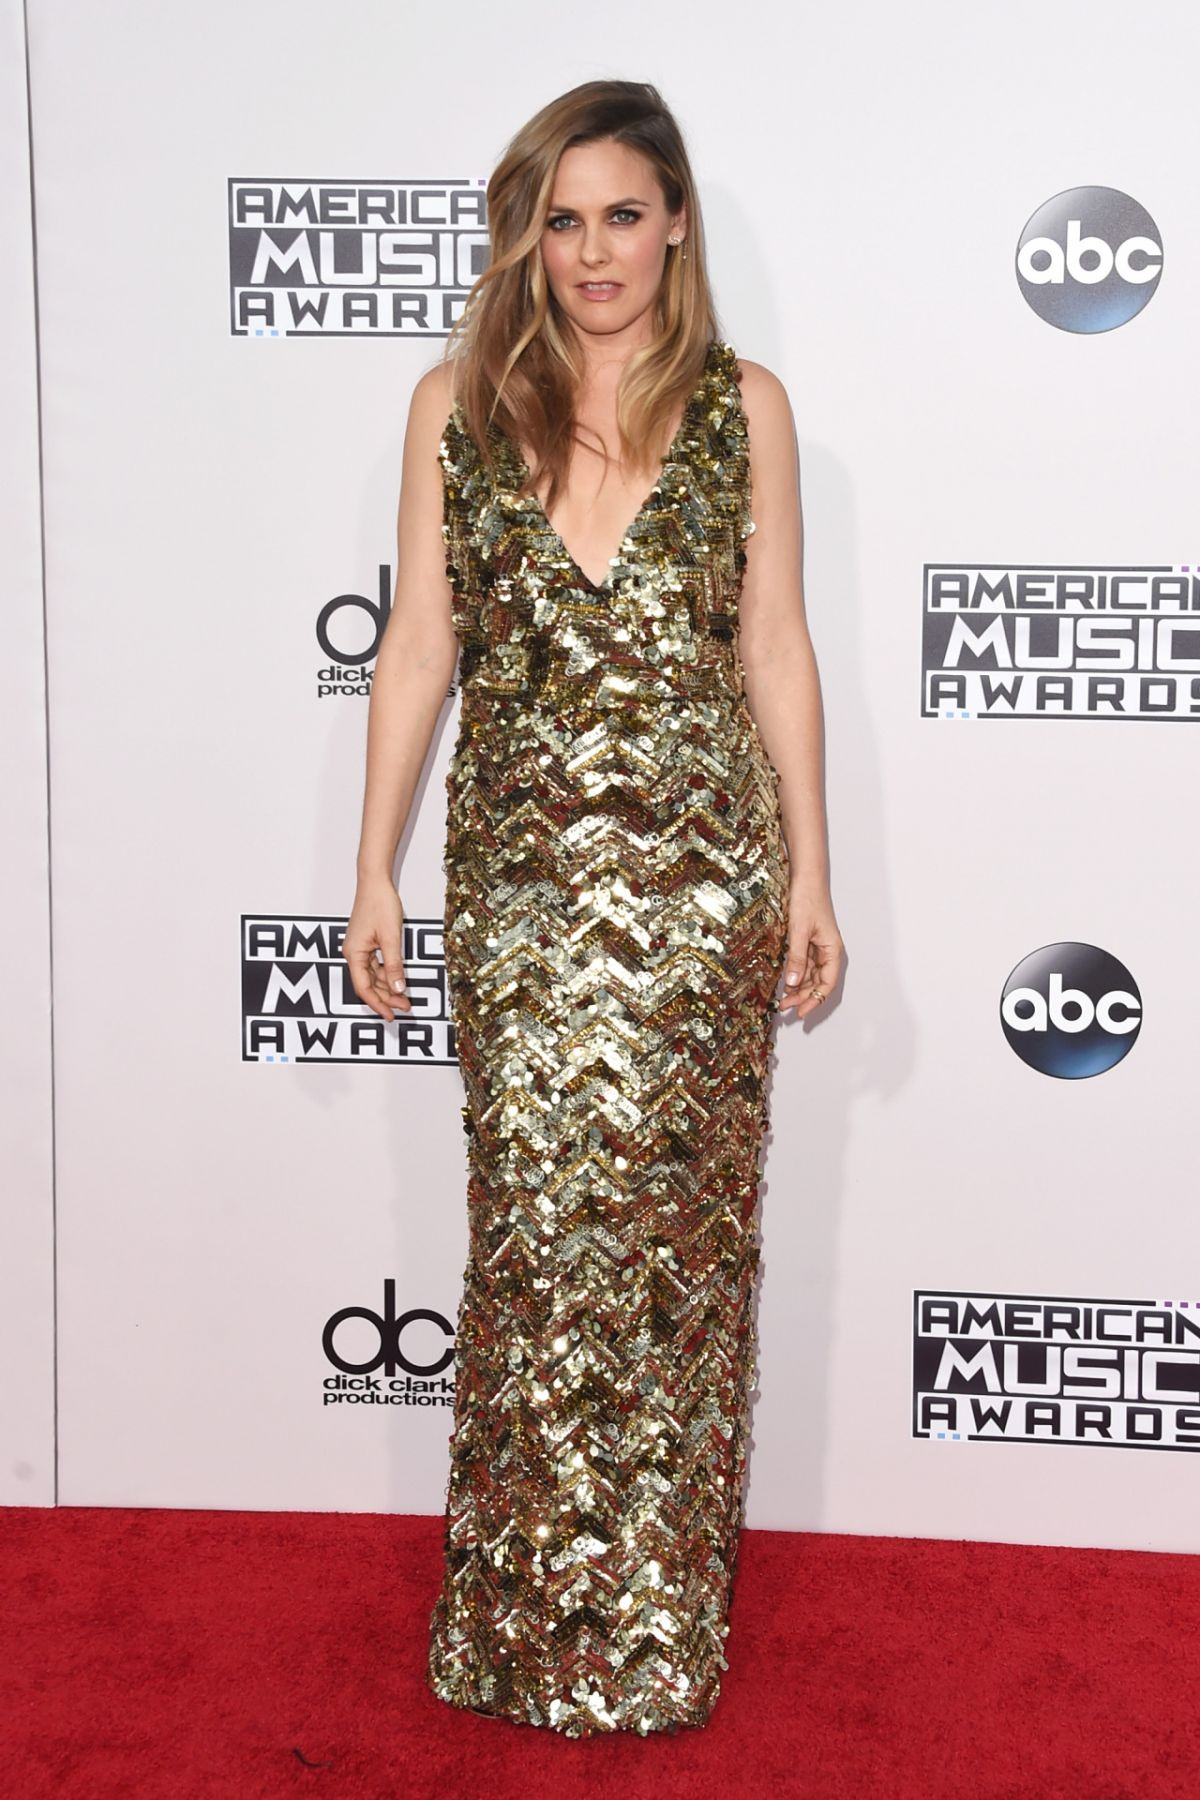 ALICIA SILVERSTONE at 2015 American Music Awards in Los Angeles 11/22/2015